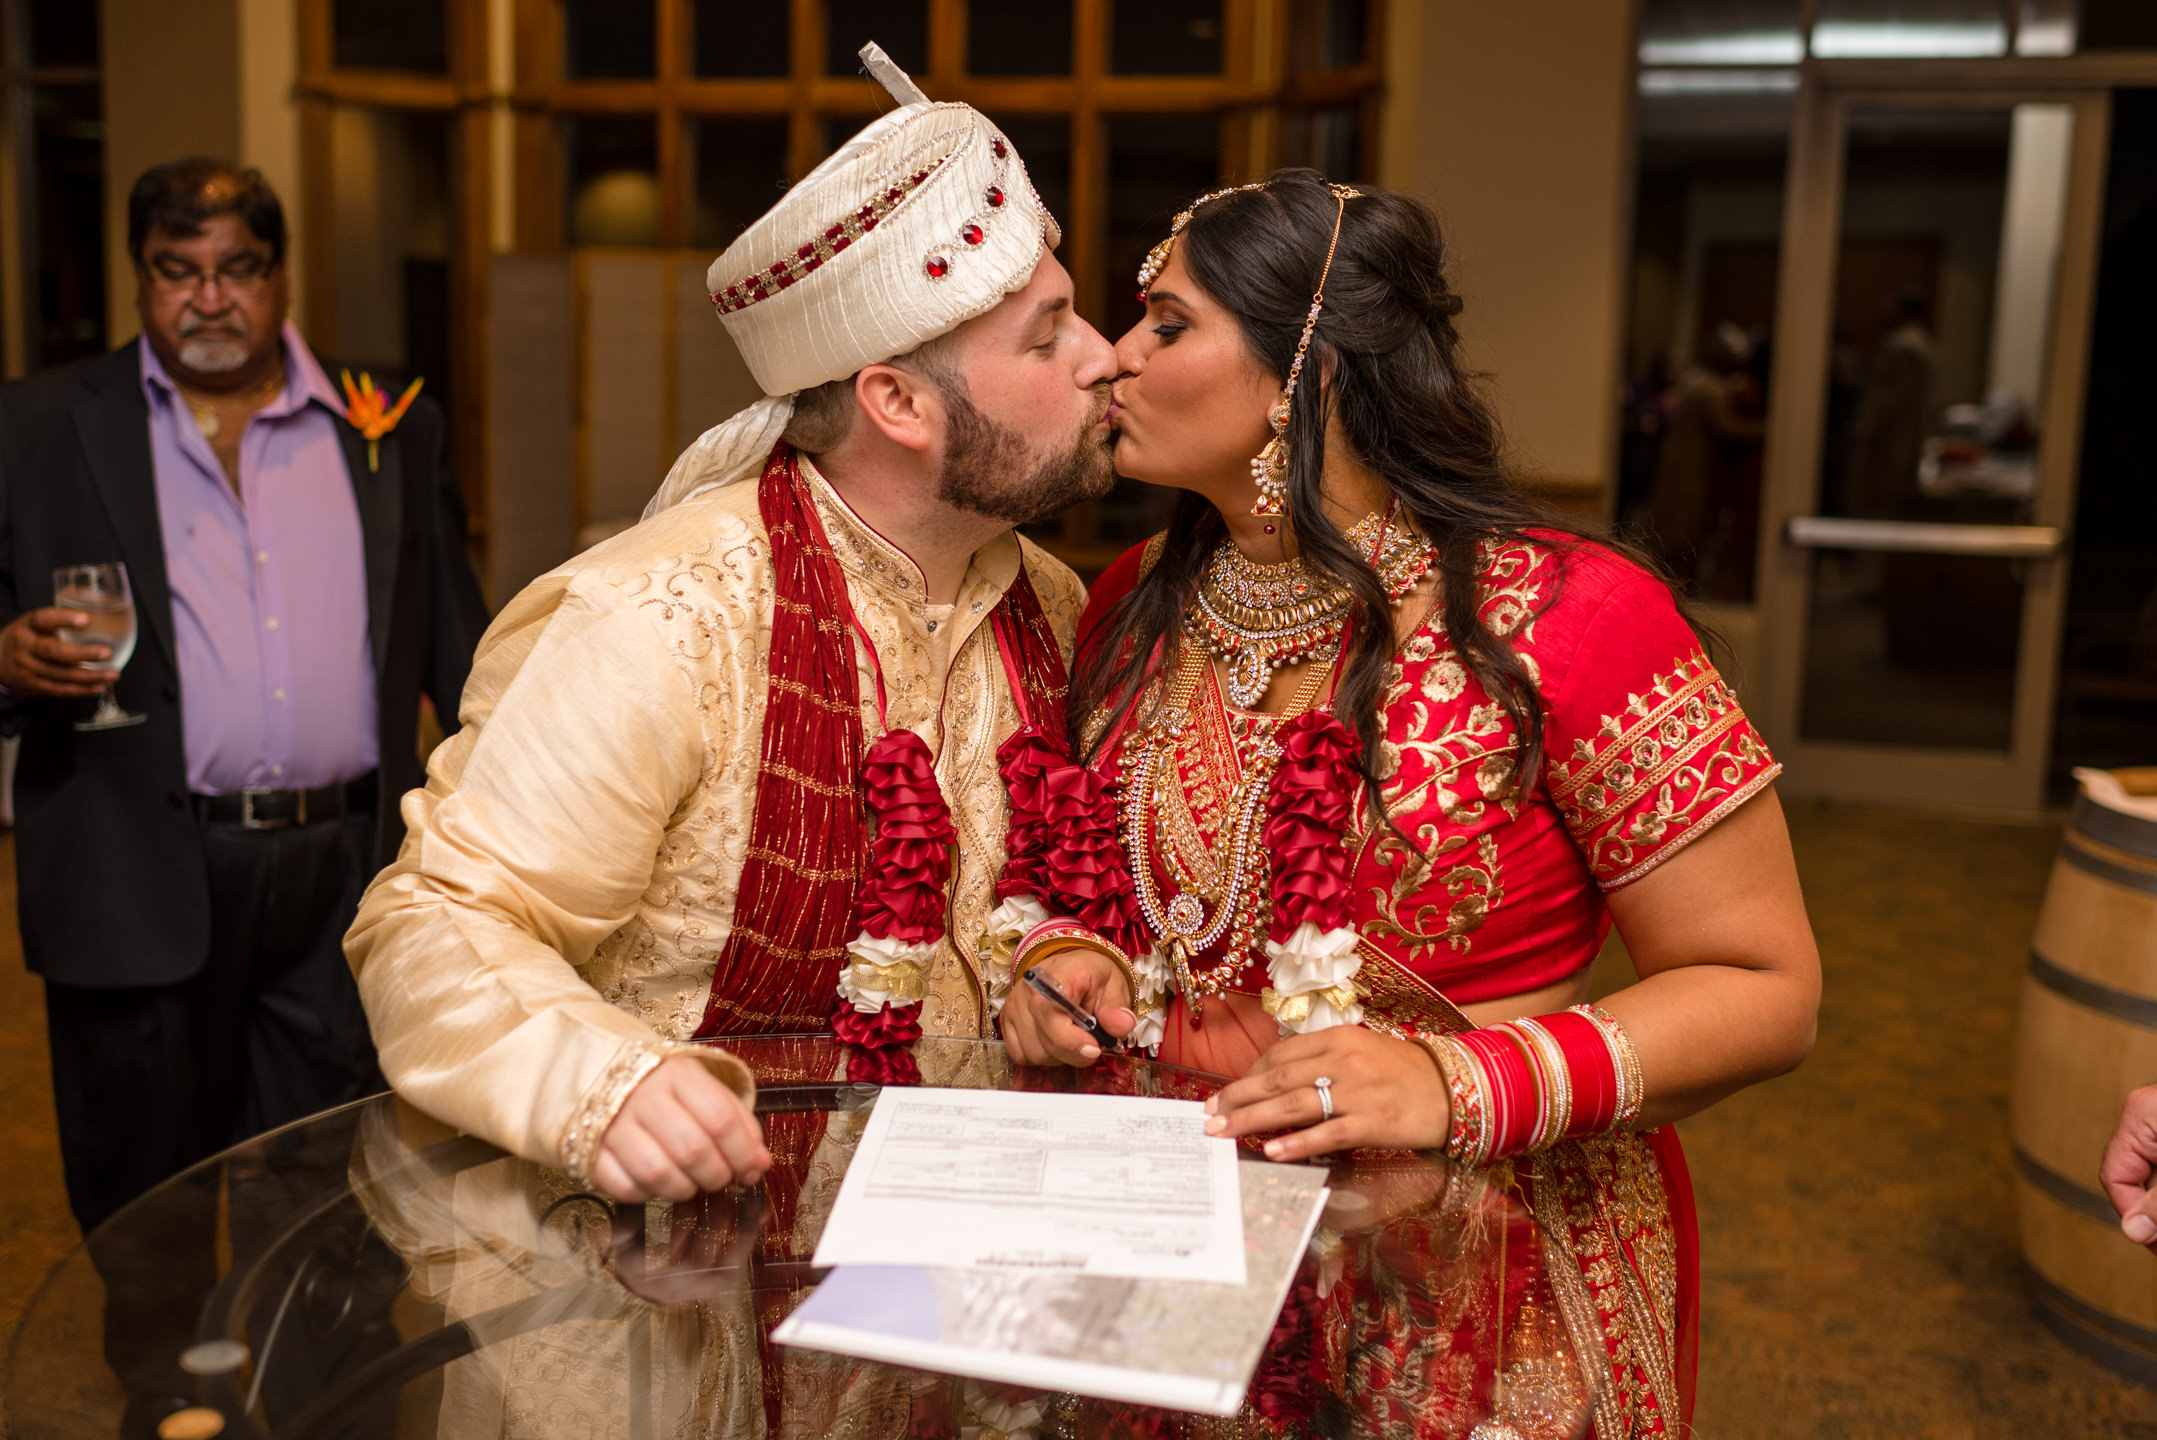 Indian Bride and Groom Happy Signing Marriage Certificate